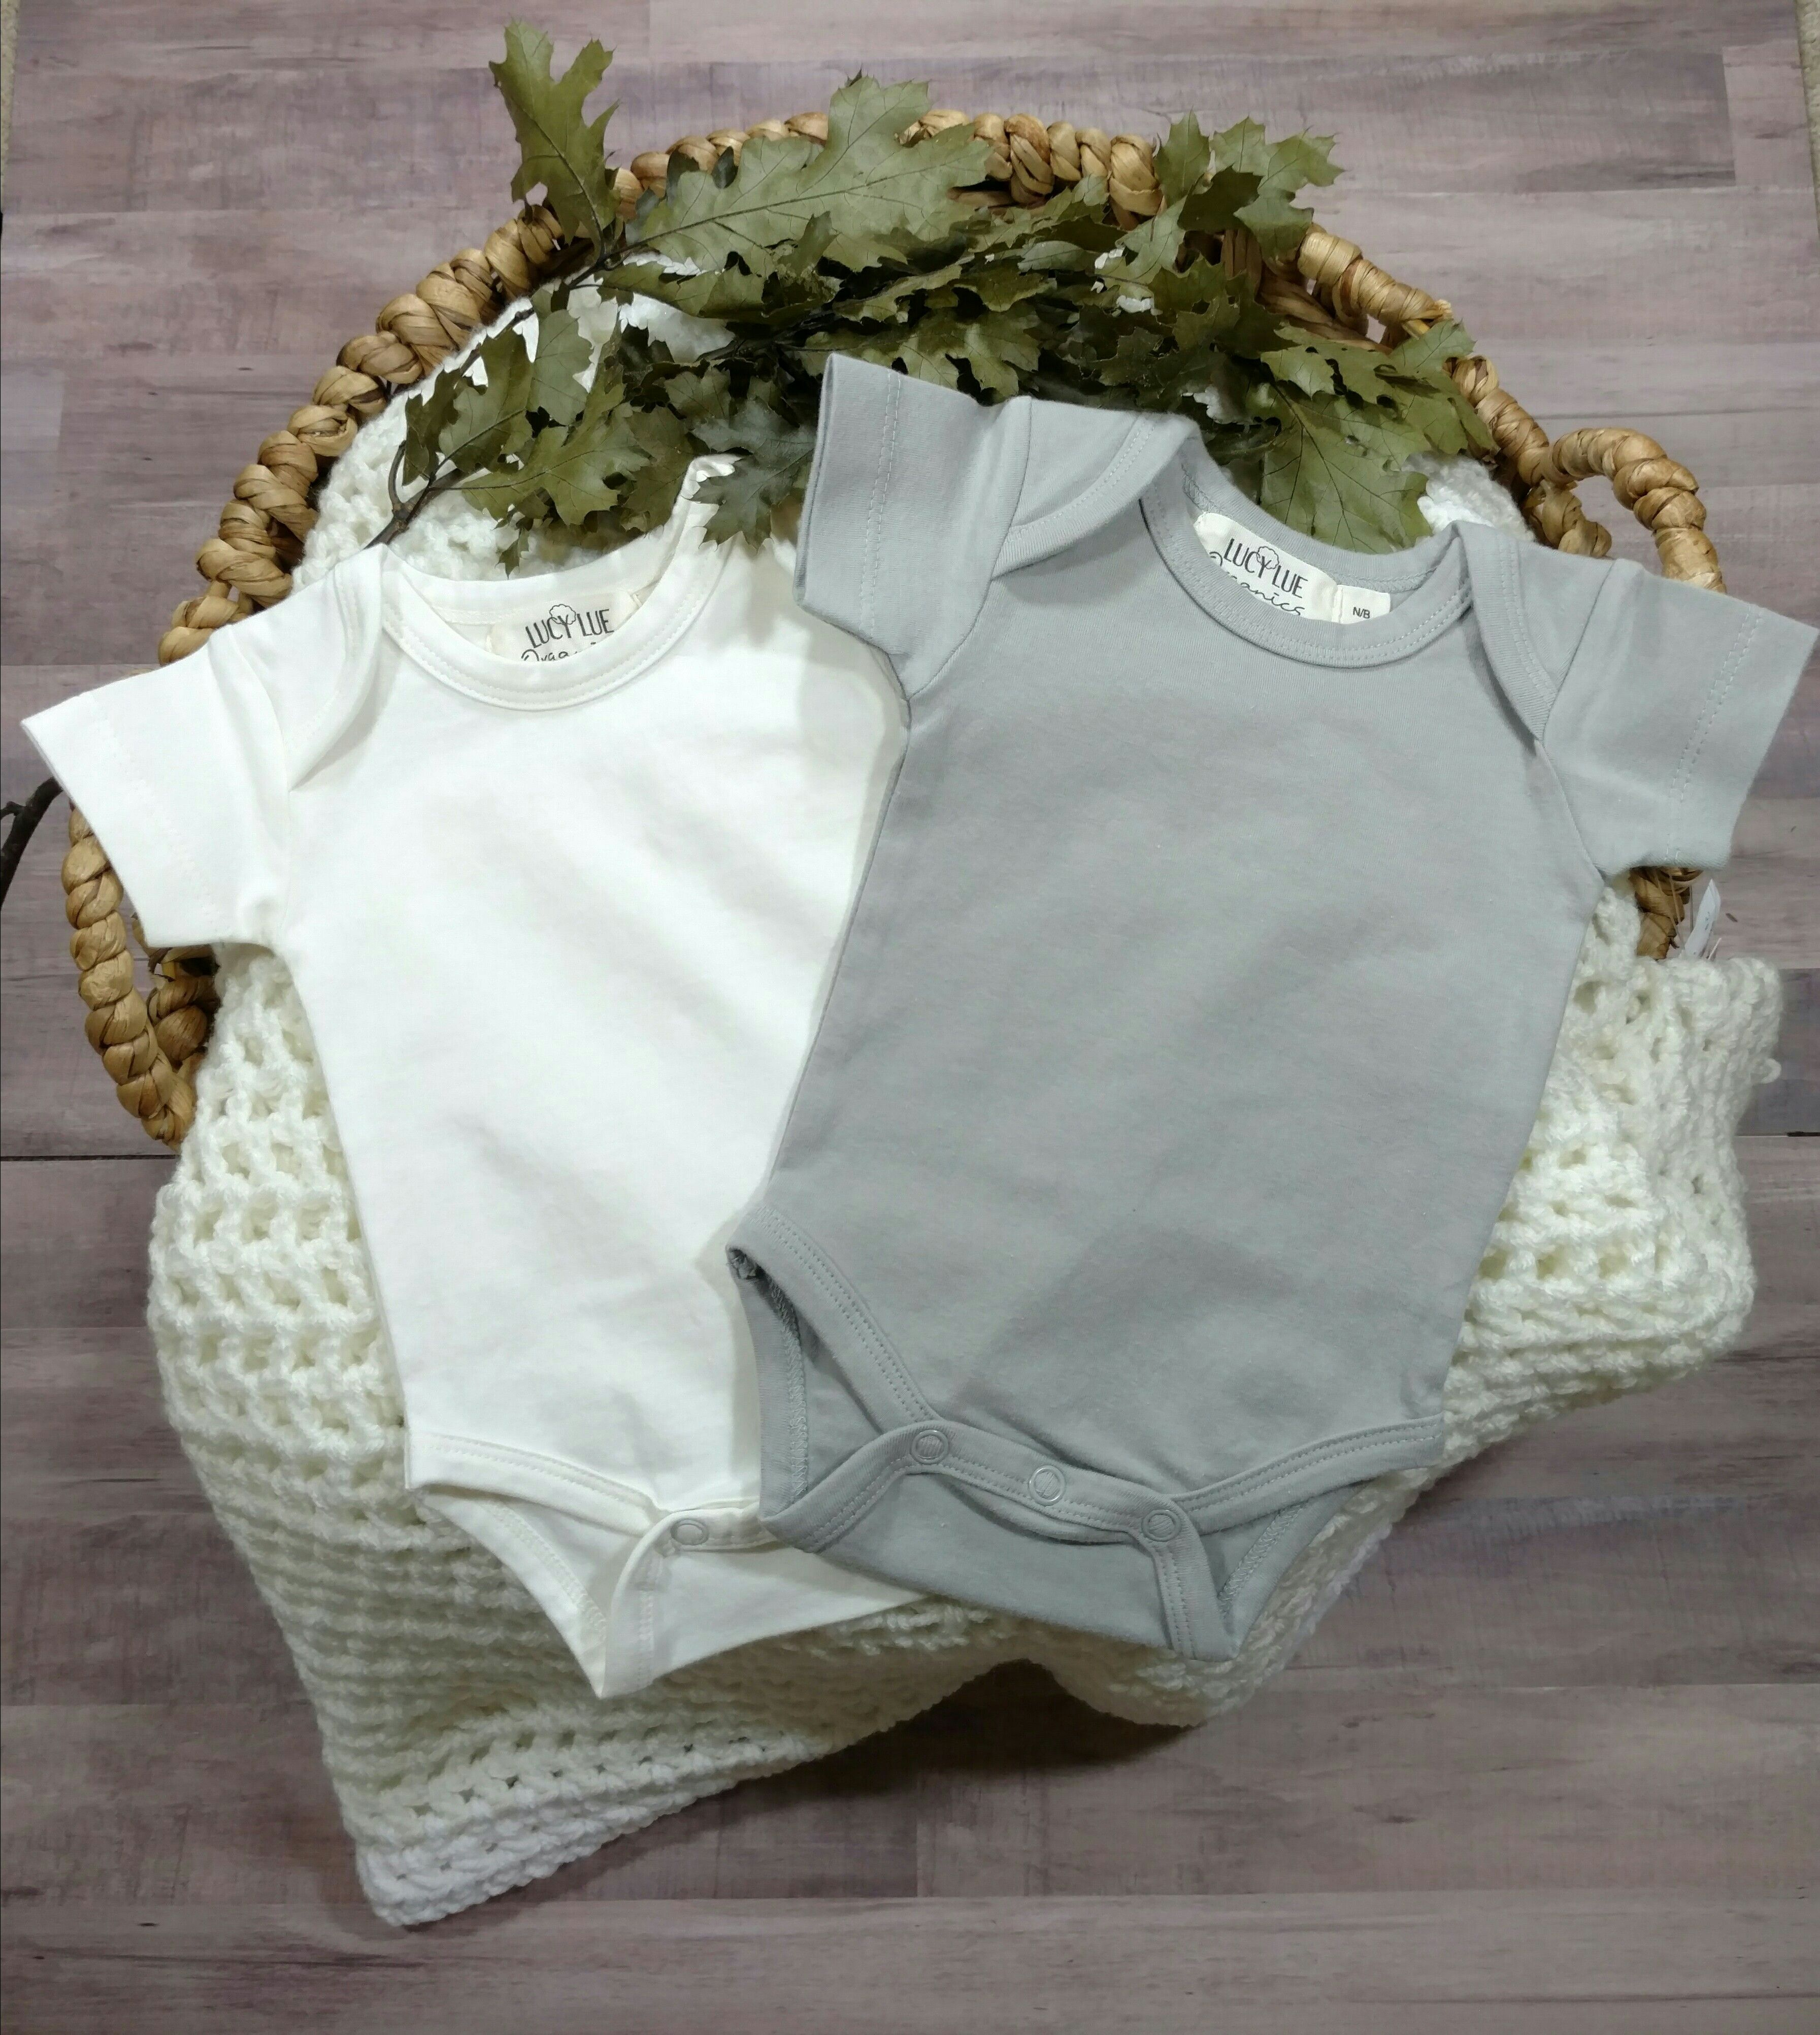 Newborn takehome outfit from Lucy Lue Organics Luxury baby basics